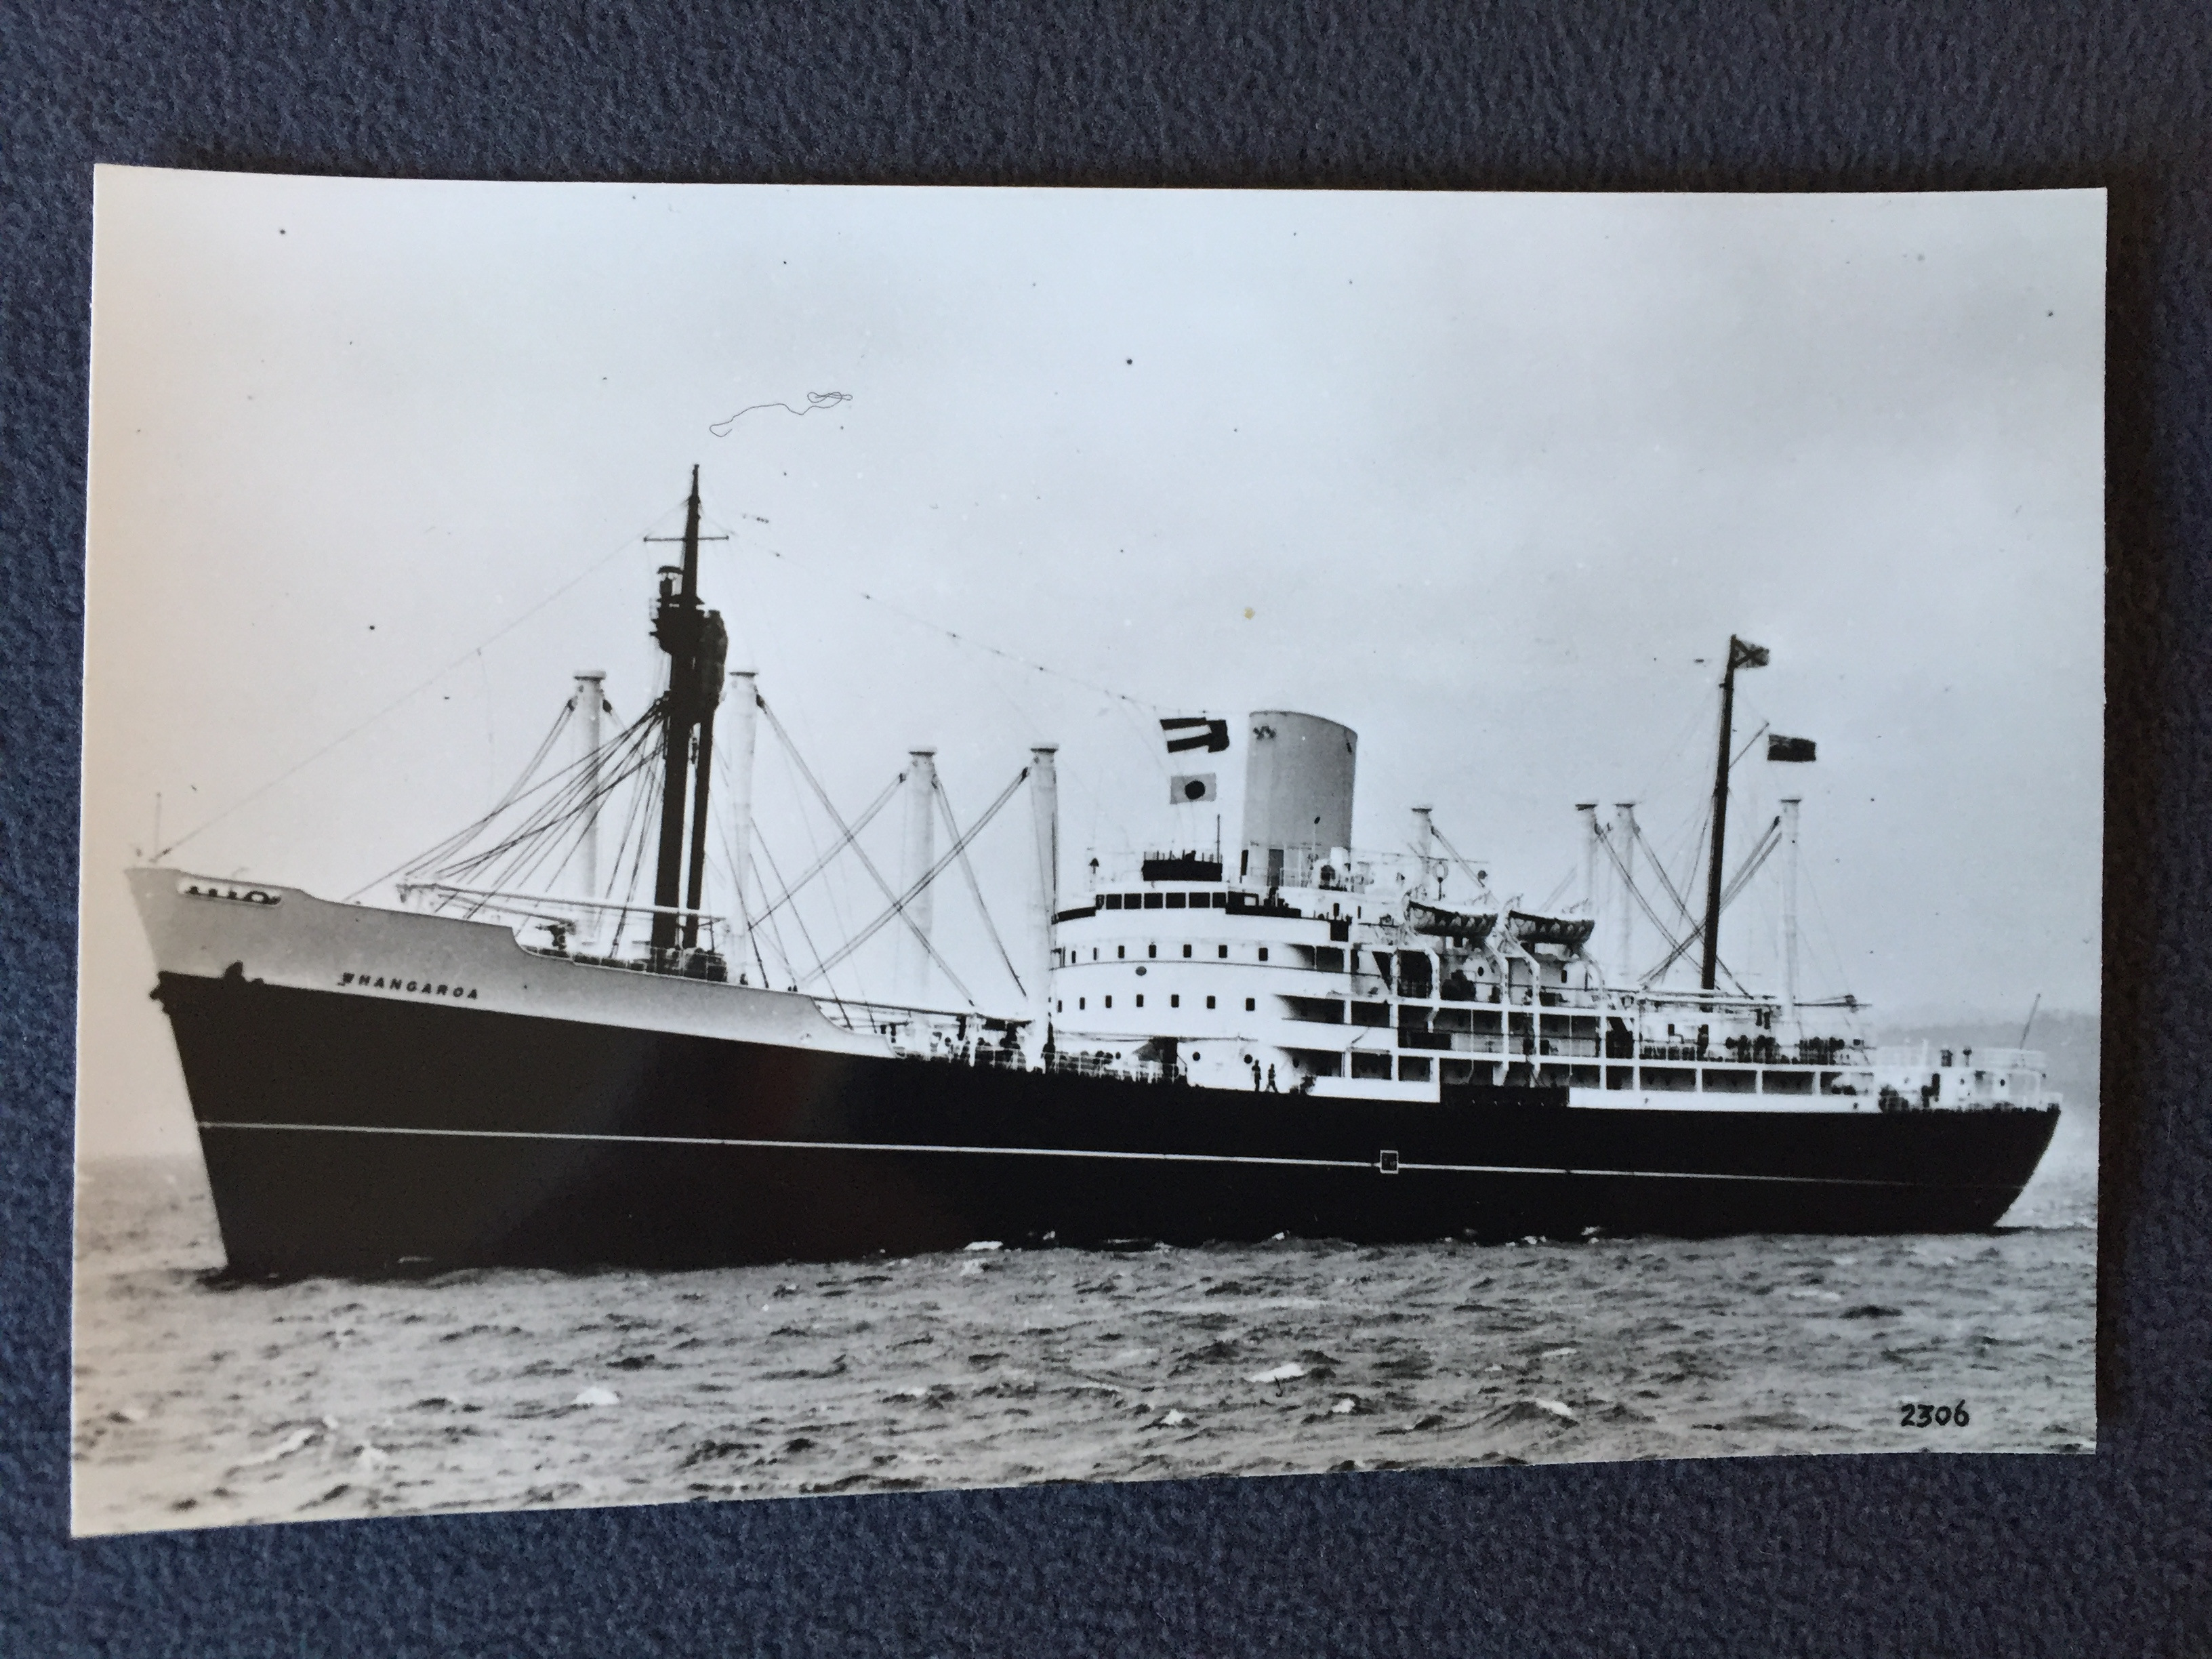 B&W PHOTOGRAPH FROM THE VESSEL WHANGAROA FROM THE BISNCo.